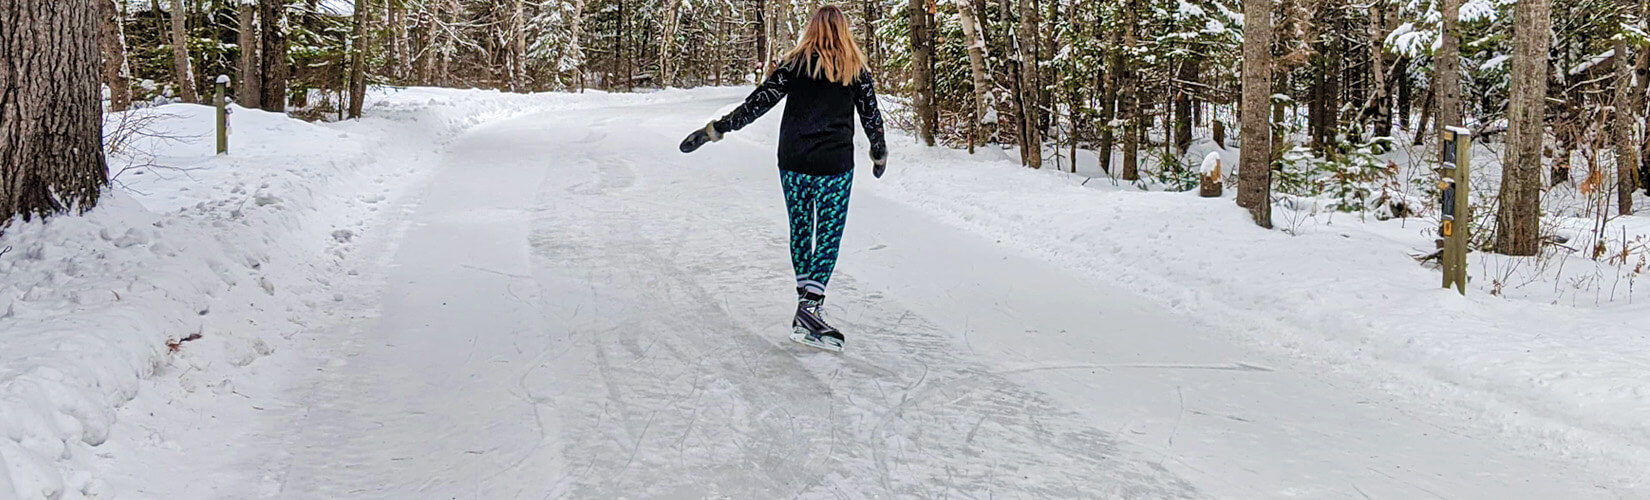 20 Outdoor Skating Trails in Ontario You'll Love At Frost Sight :: I've Been Bit! Travel Blog